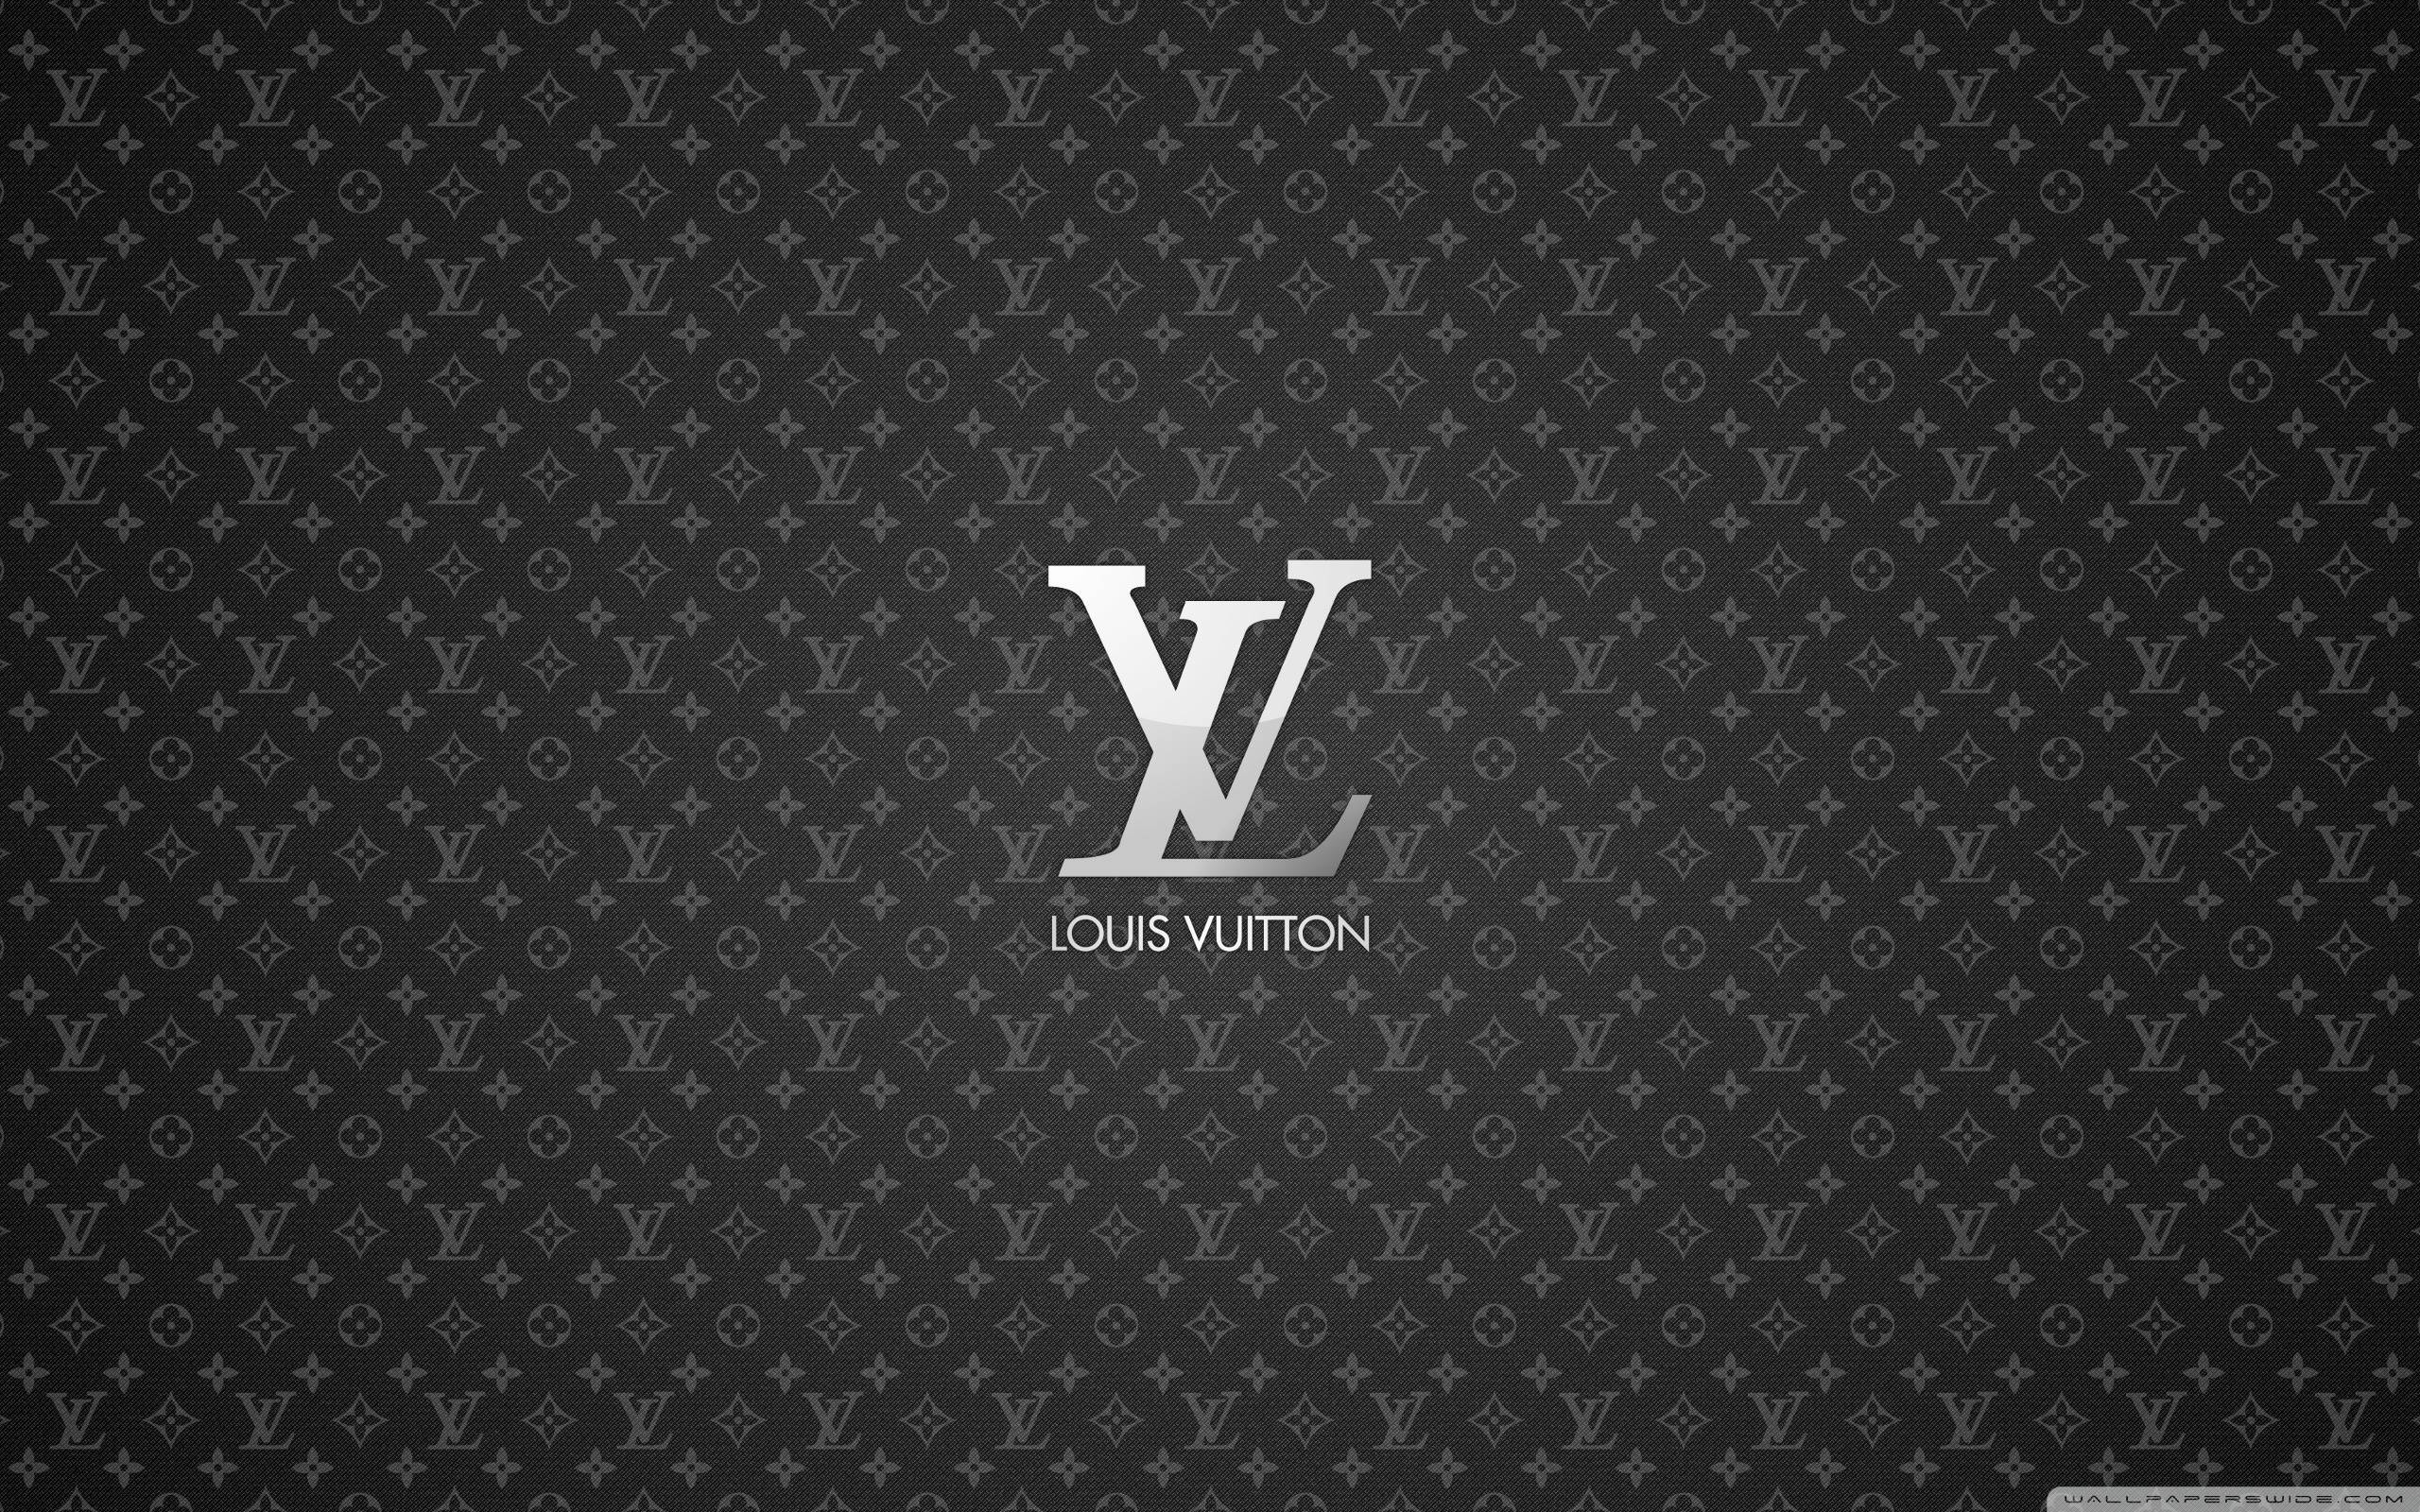 Wonderful Wallpaper Macbook Louis Vuitton - k58Z4sv  You Should Have_174863.jpg